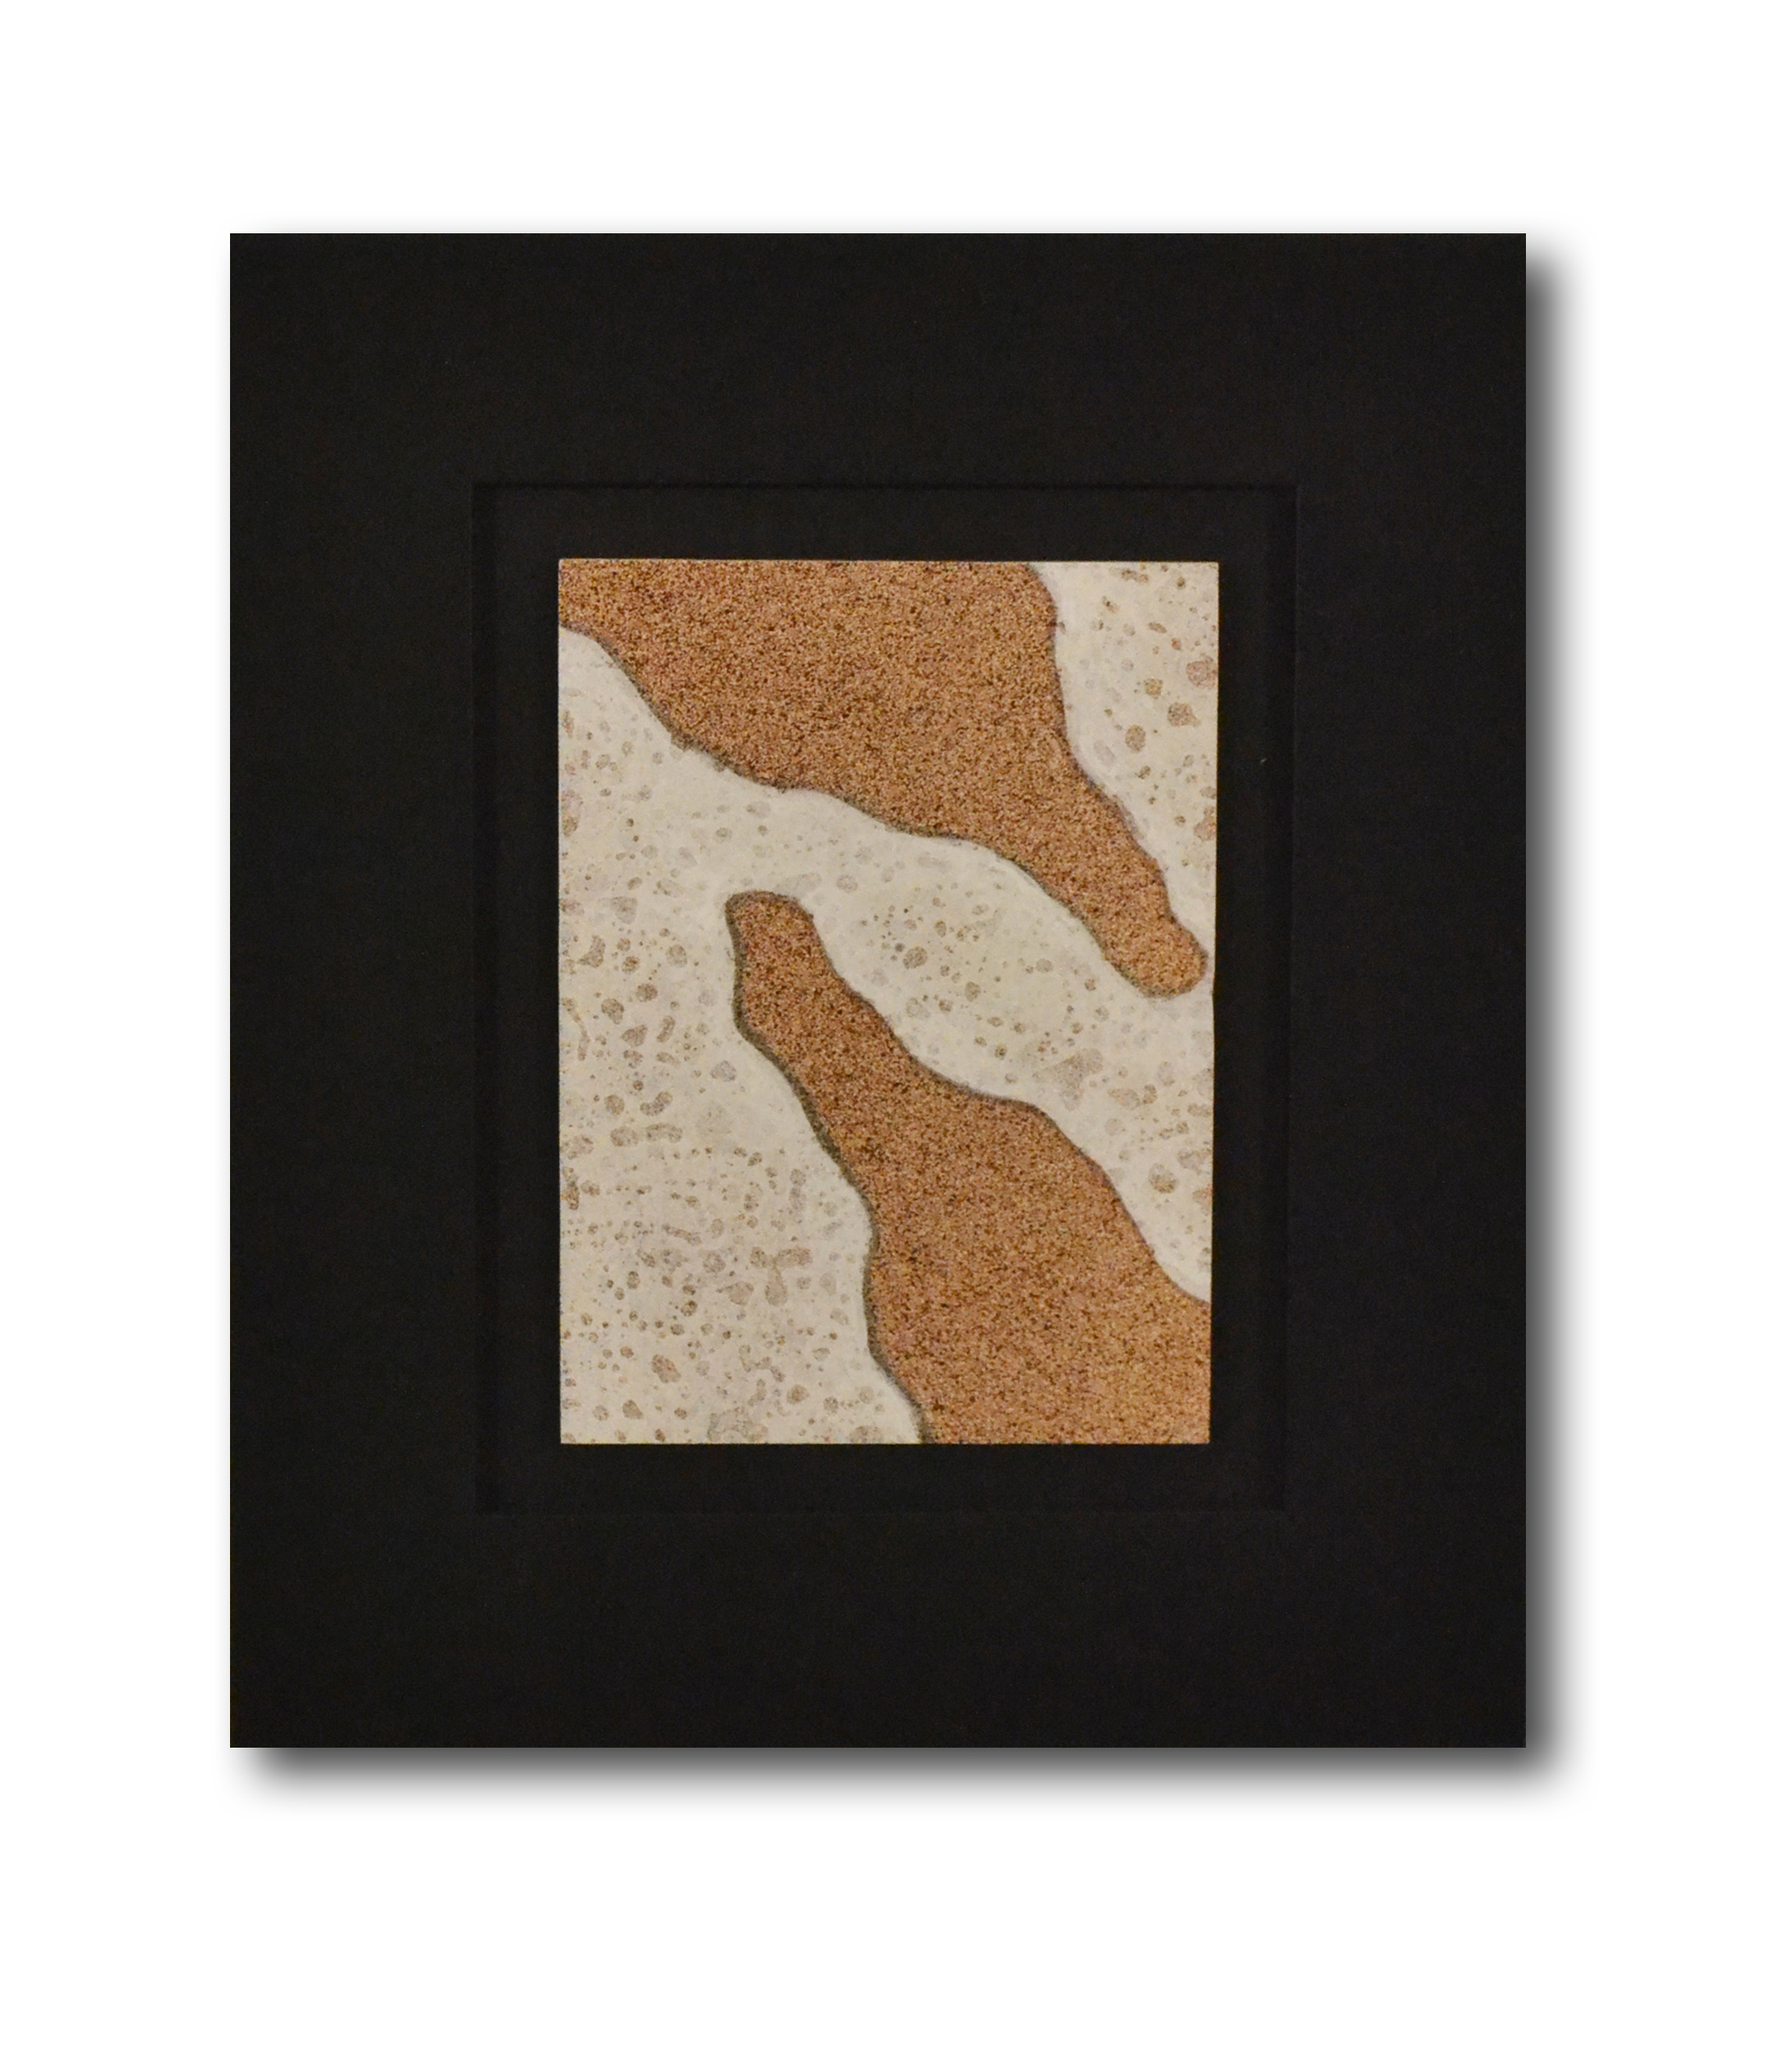 """Title: Dune 13 Artist: Mark Travers Year: 2011 Medium: Oil and acrylic on panel Size: 12"""" x 14"""" (including frame)"""